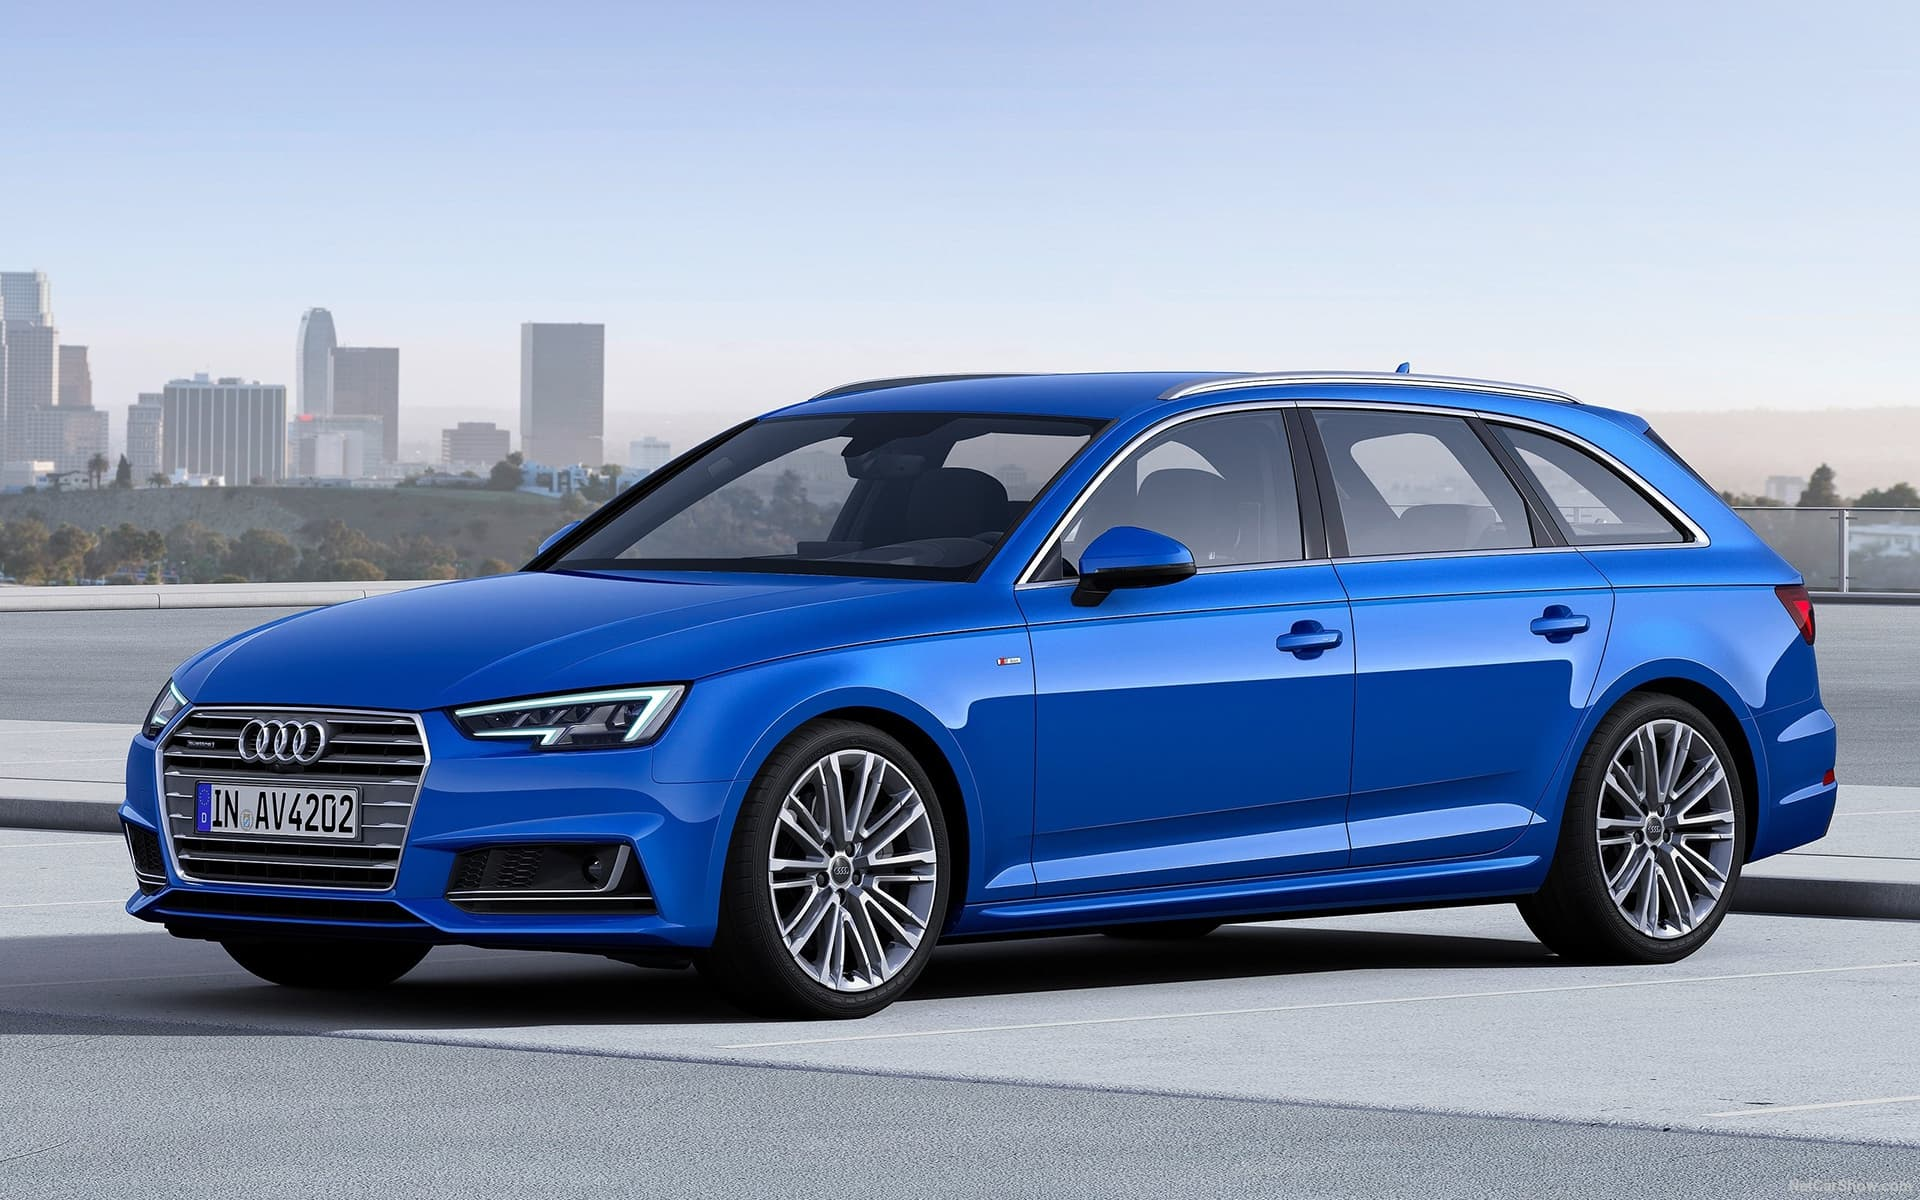 2016 Audi A4 Avant Wallpapers Hd High Quality Download